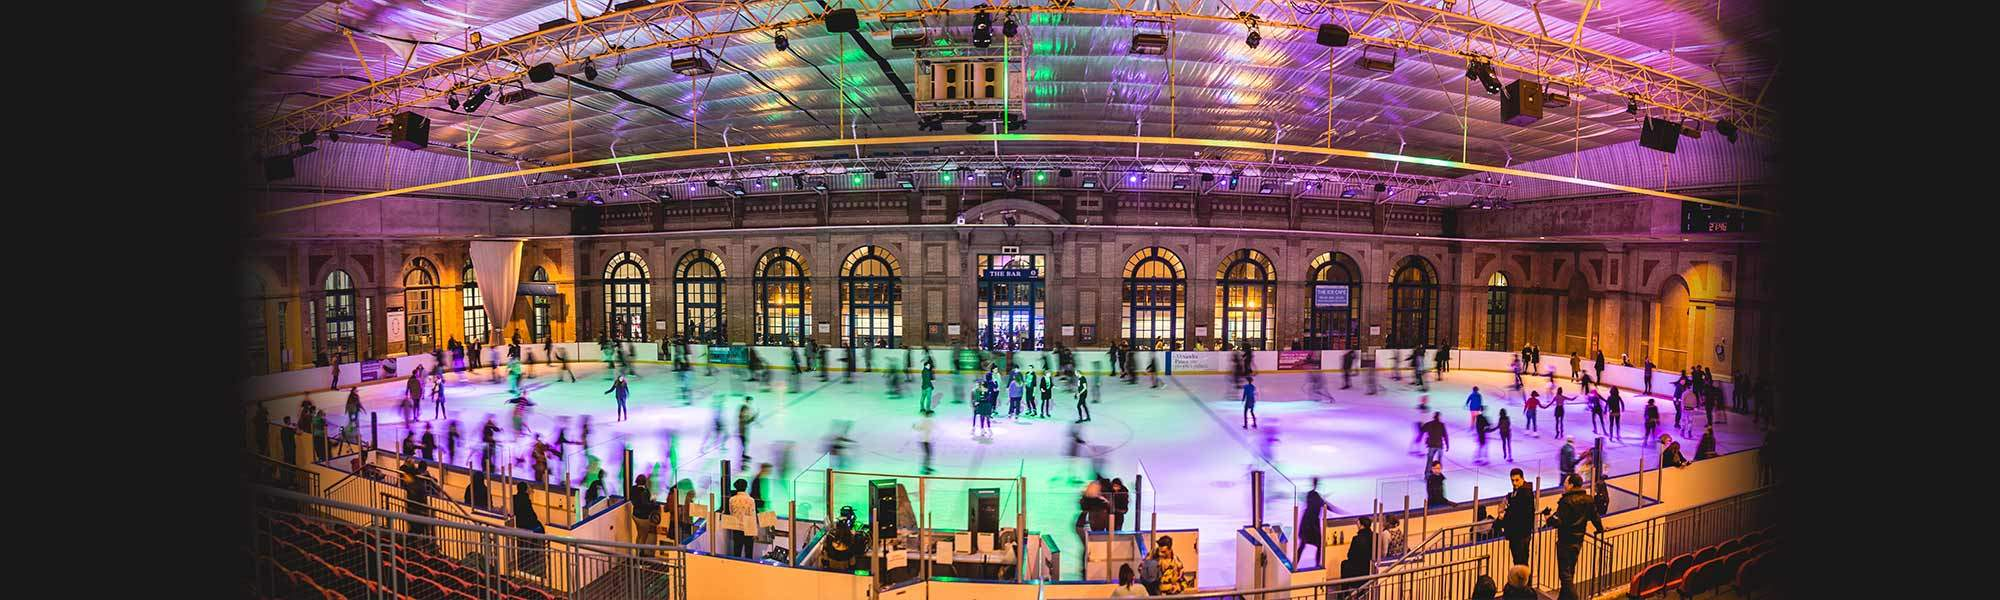 Little Bird Ice Skating at Alexandra Palace - Skate at One of London's Most Spectacular Locations, 50% off